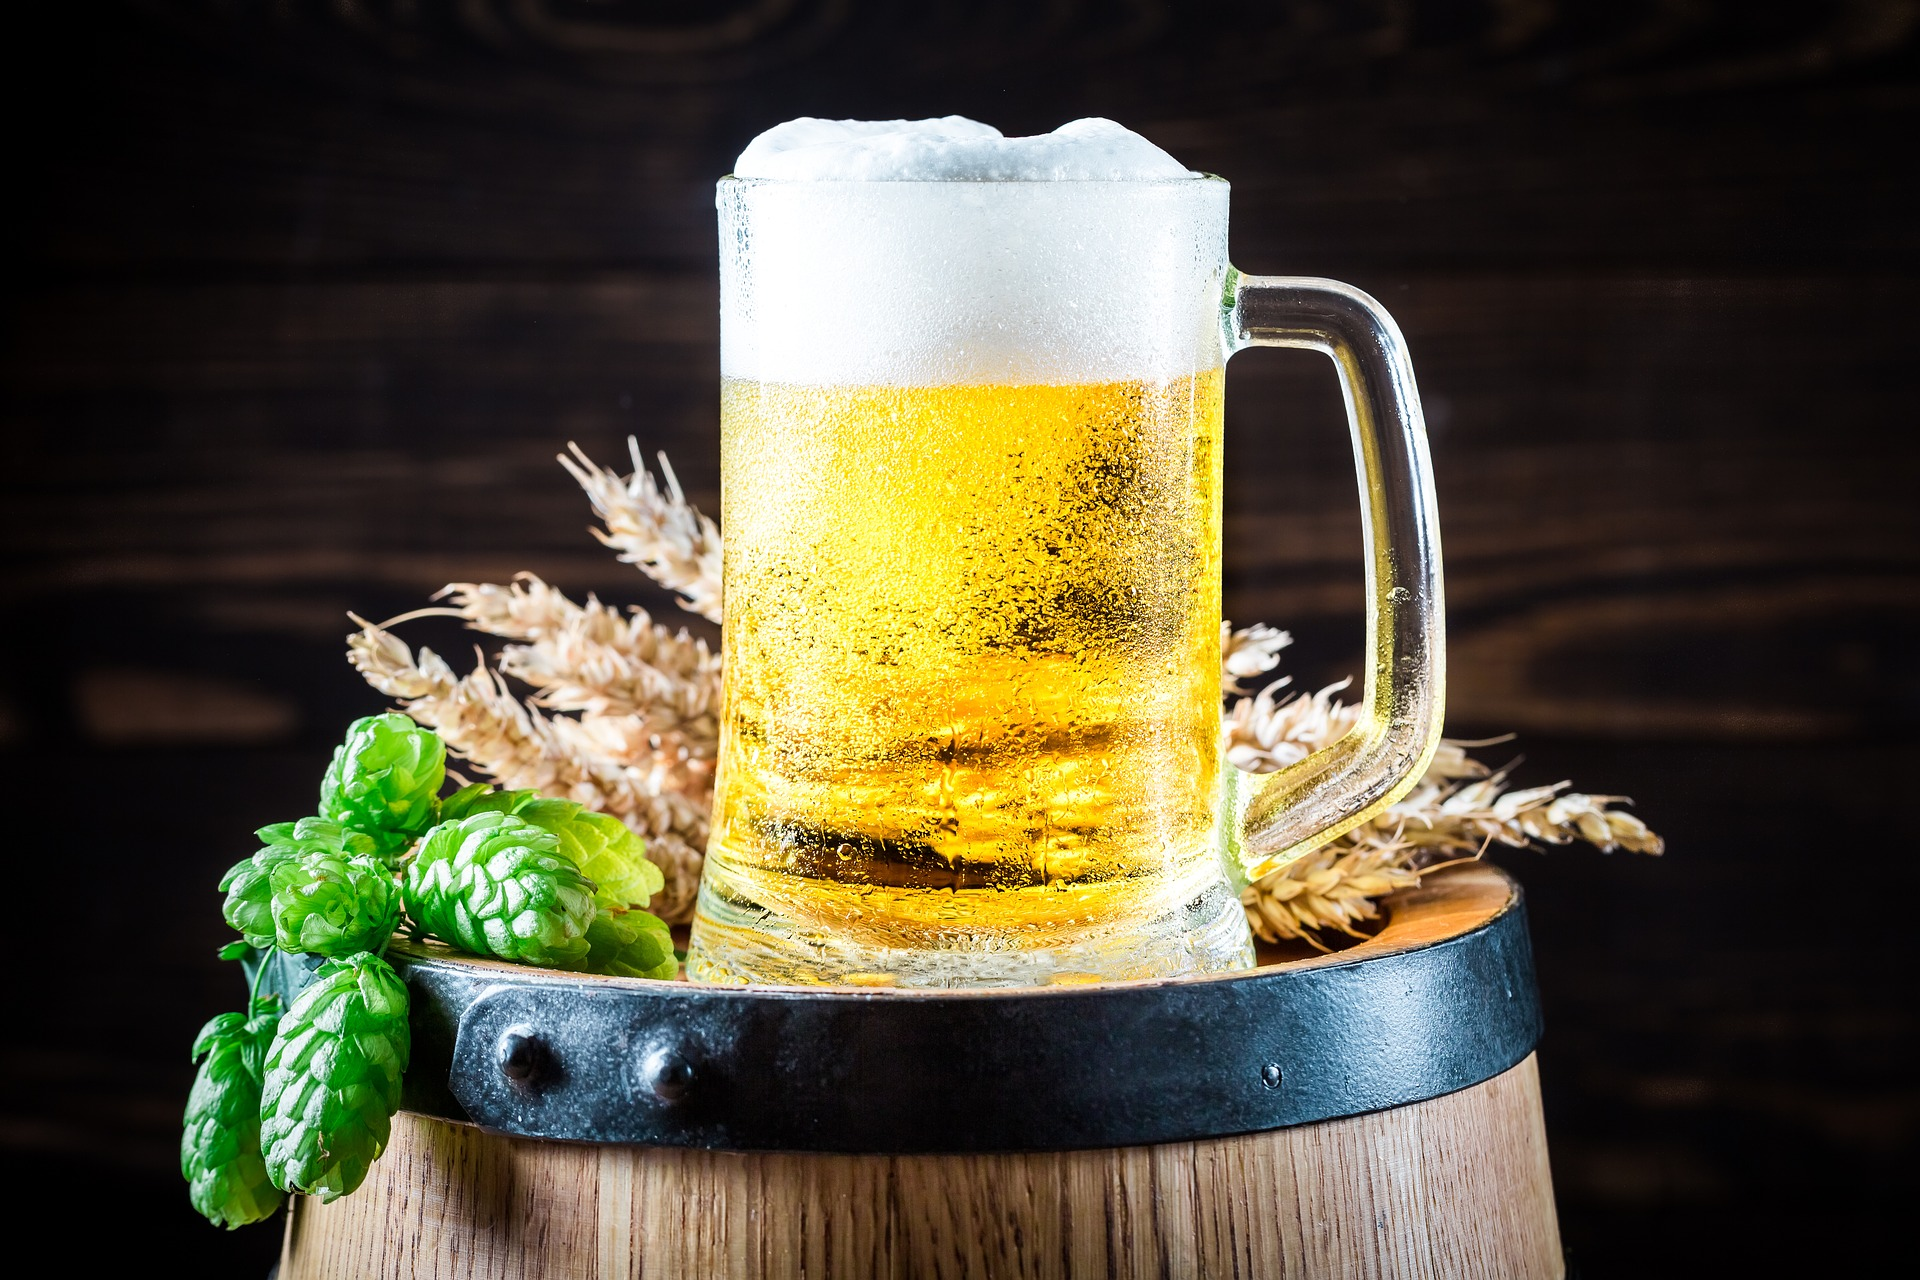 Alcoholic Beverages Market By Production, Manufacturer, Growth, Supply, Demand, Swot Analysis Forecast Outlook 2026